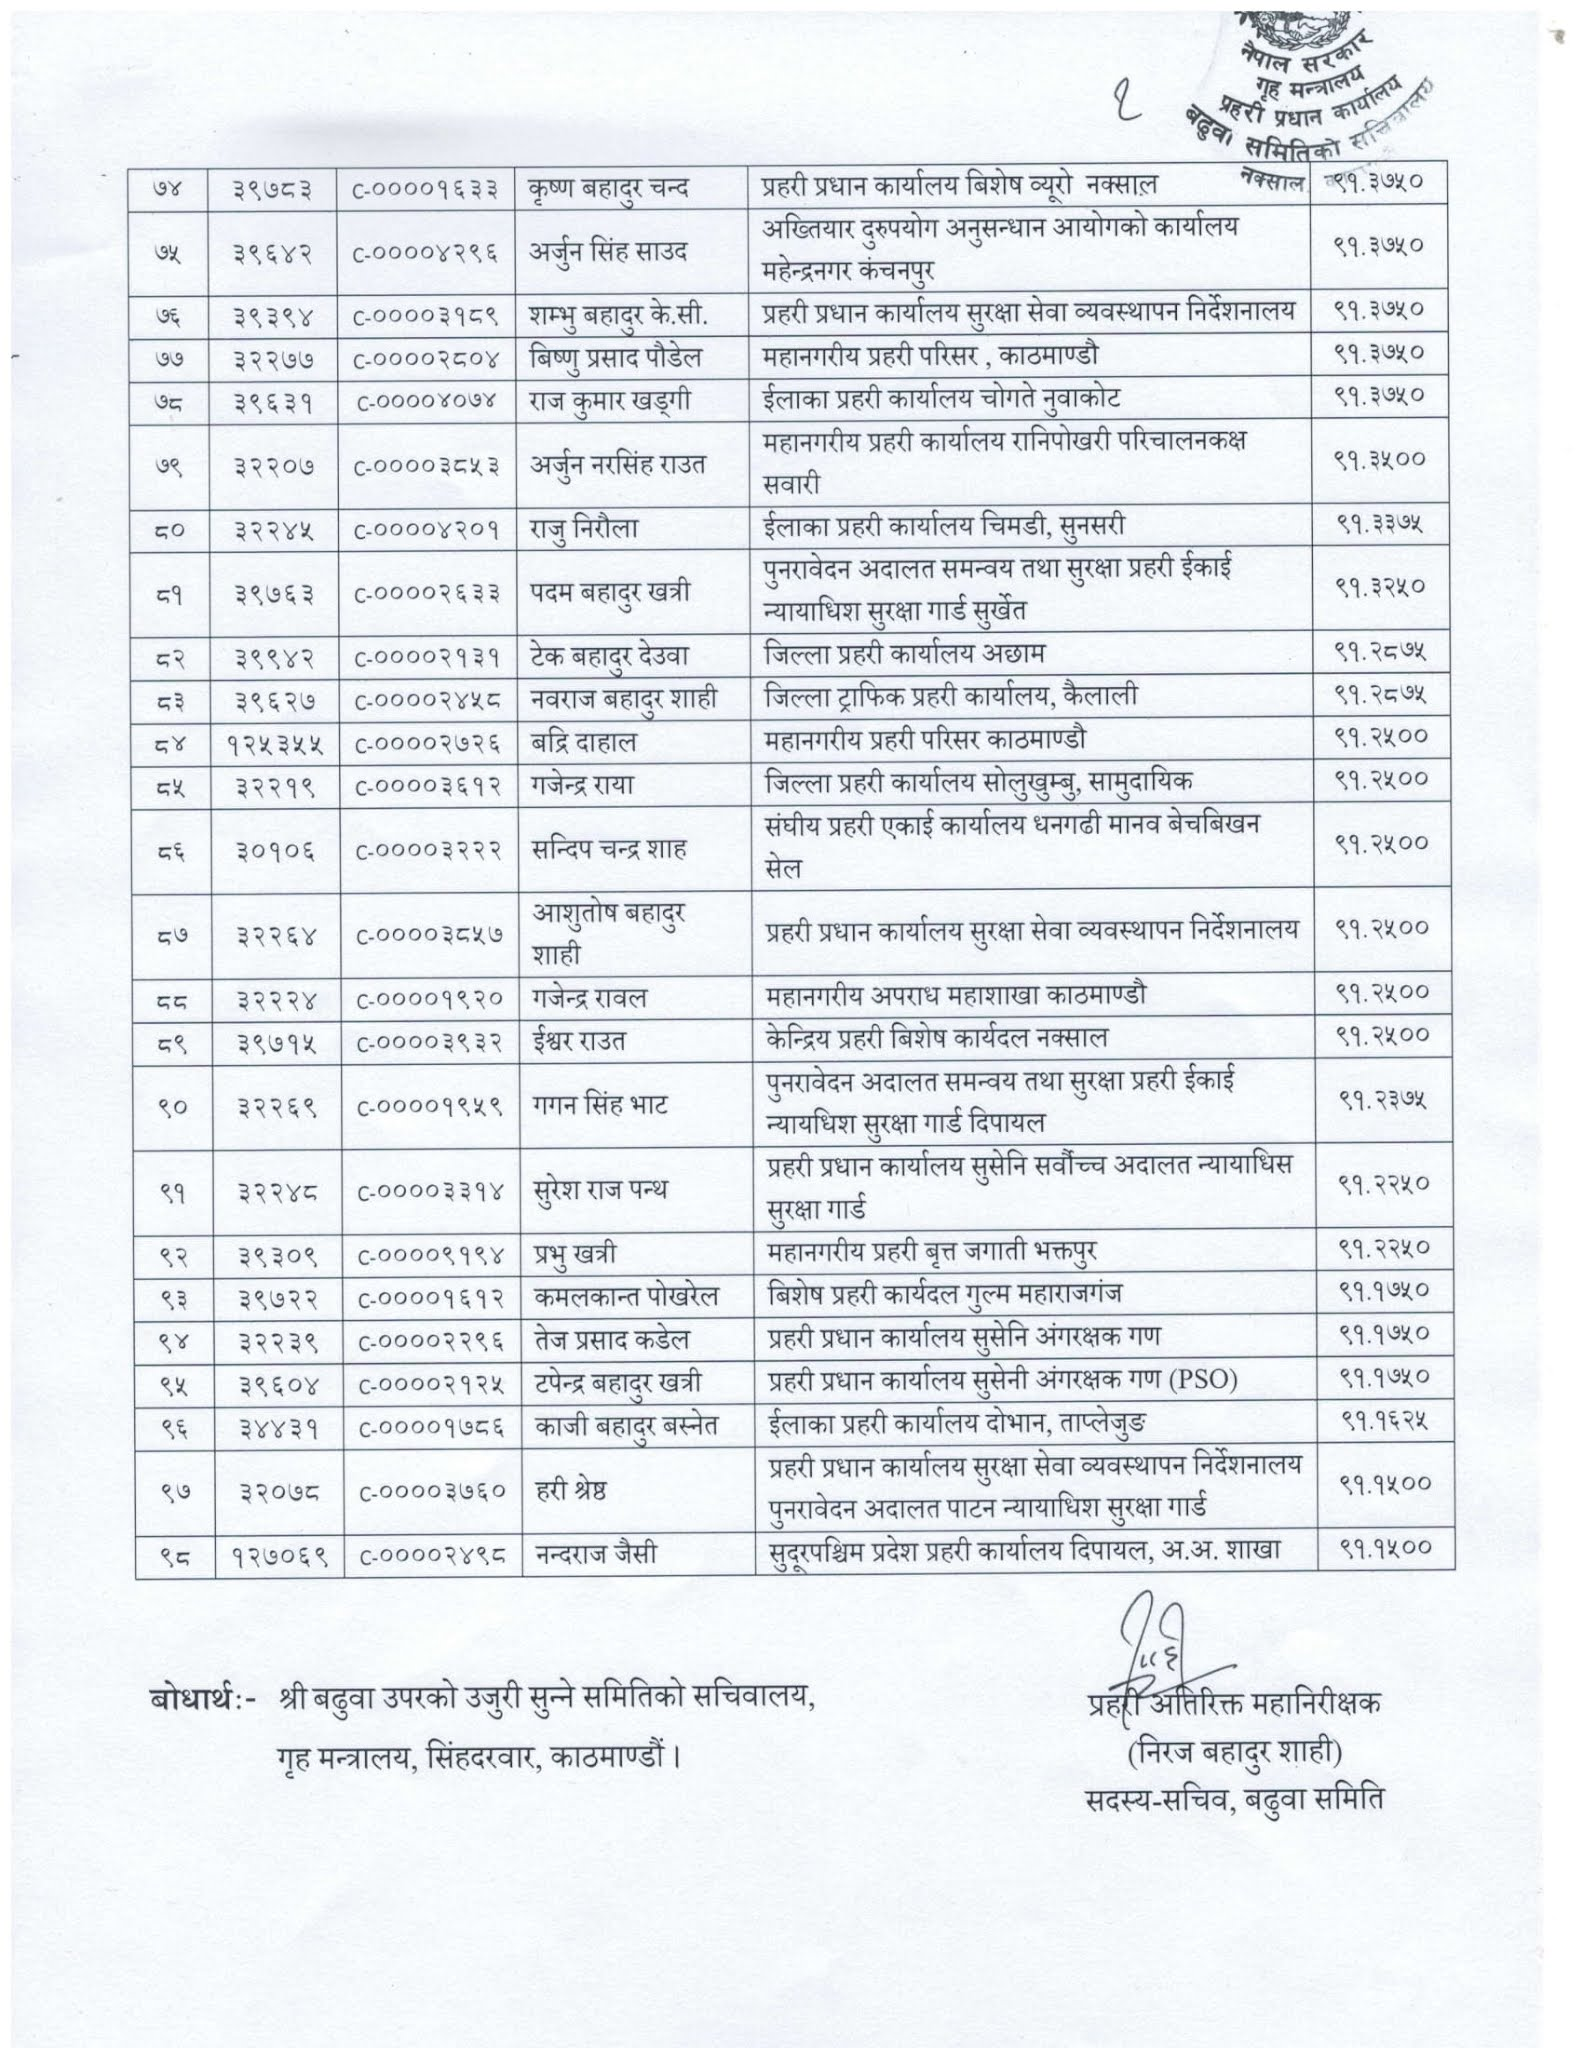 Nepal Police Promotion Recommendation List From SI to Police Inspector